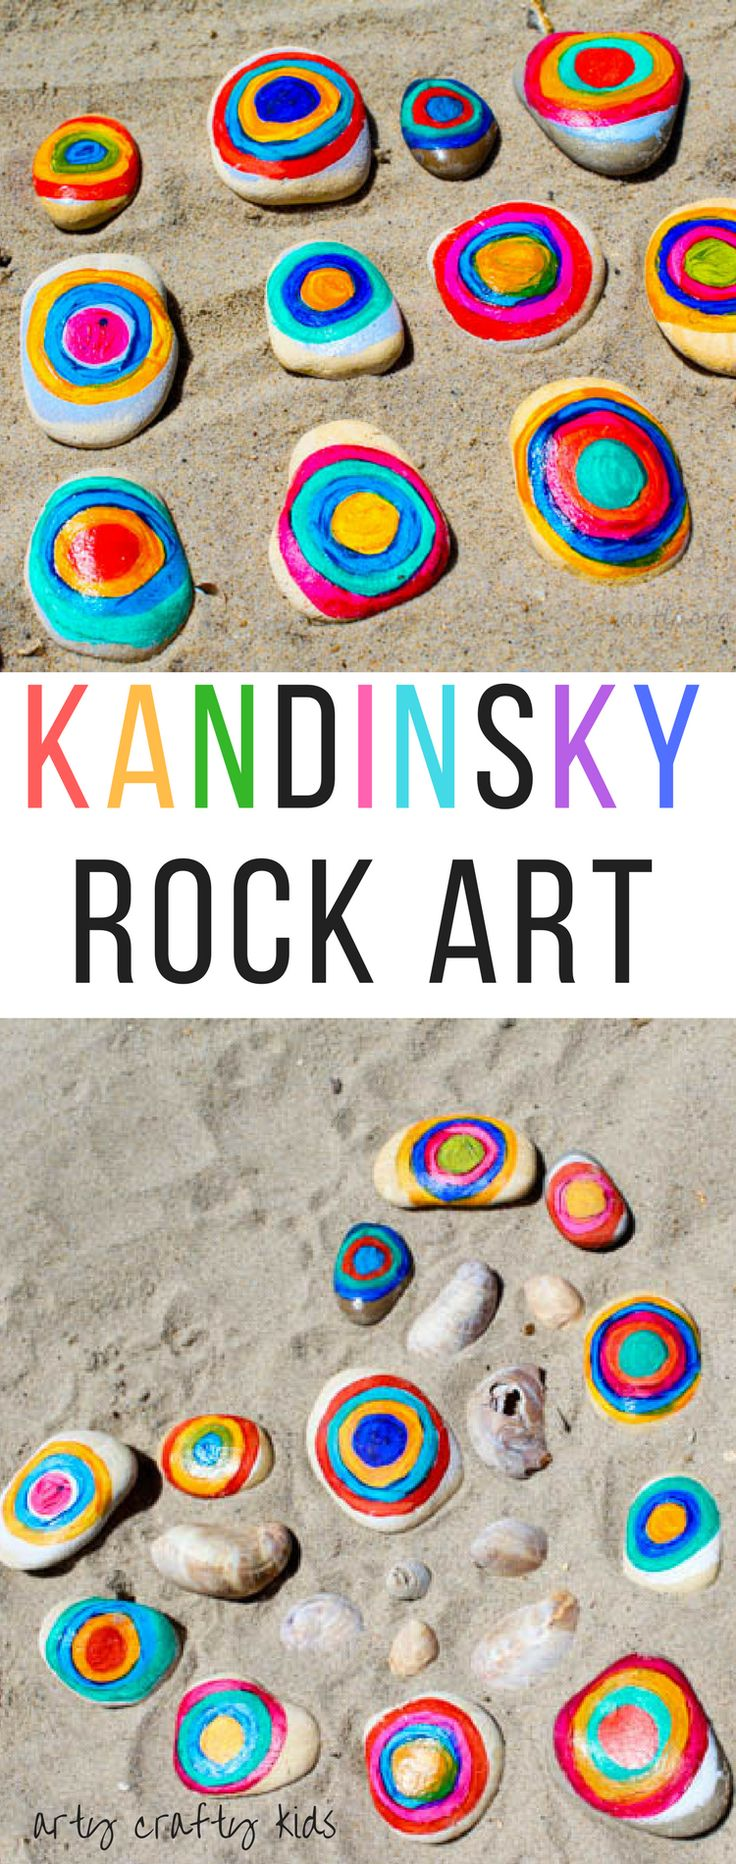 Arty Crafty Kids Art Kandinsky Inspired Rock Art